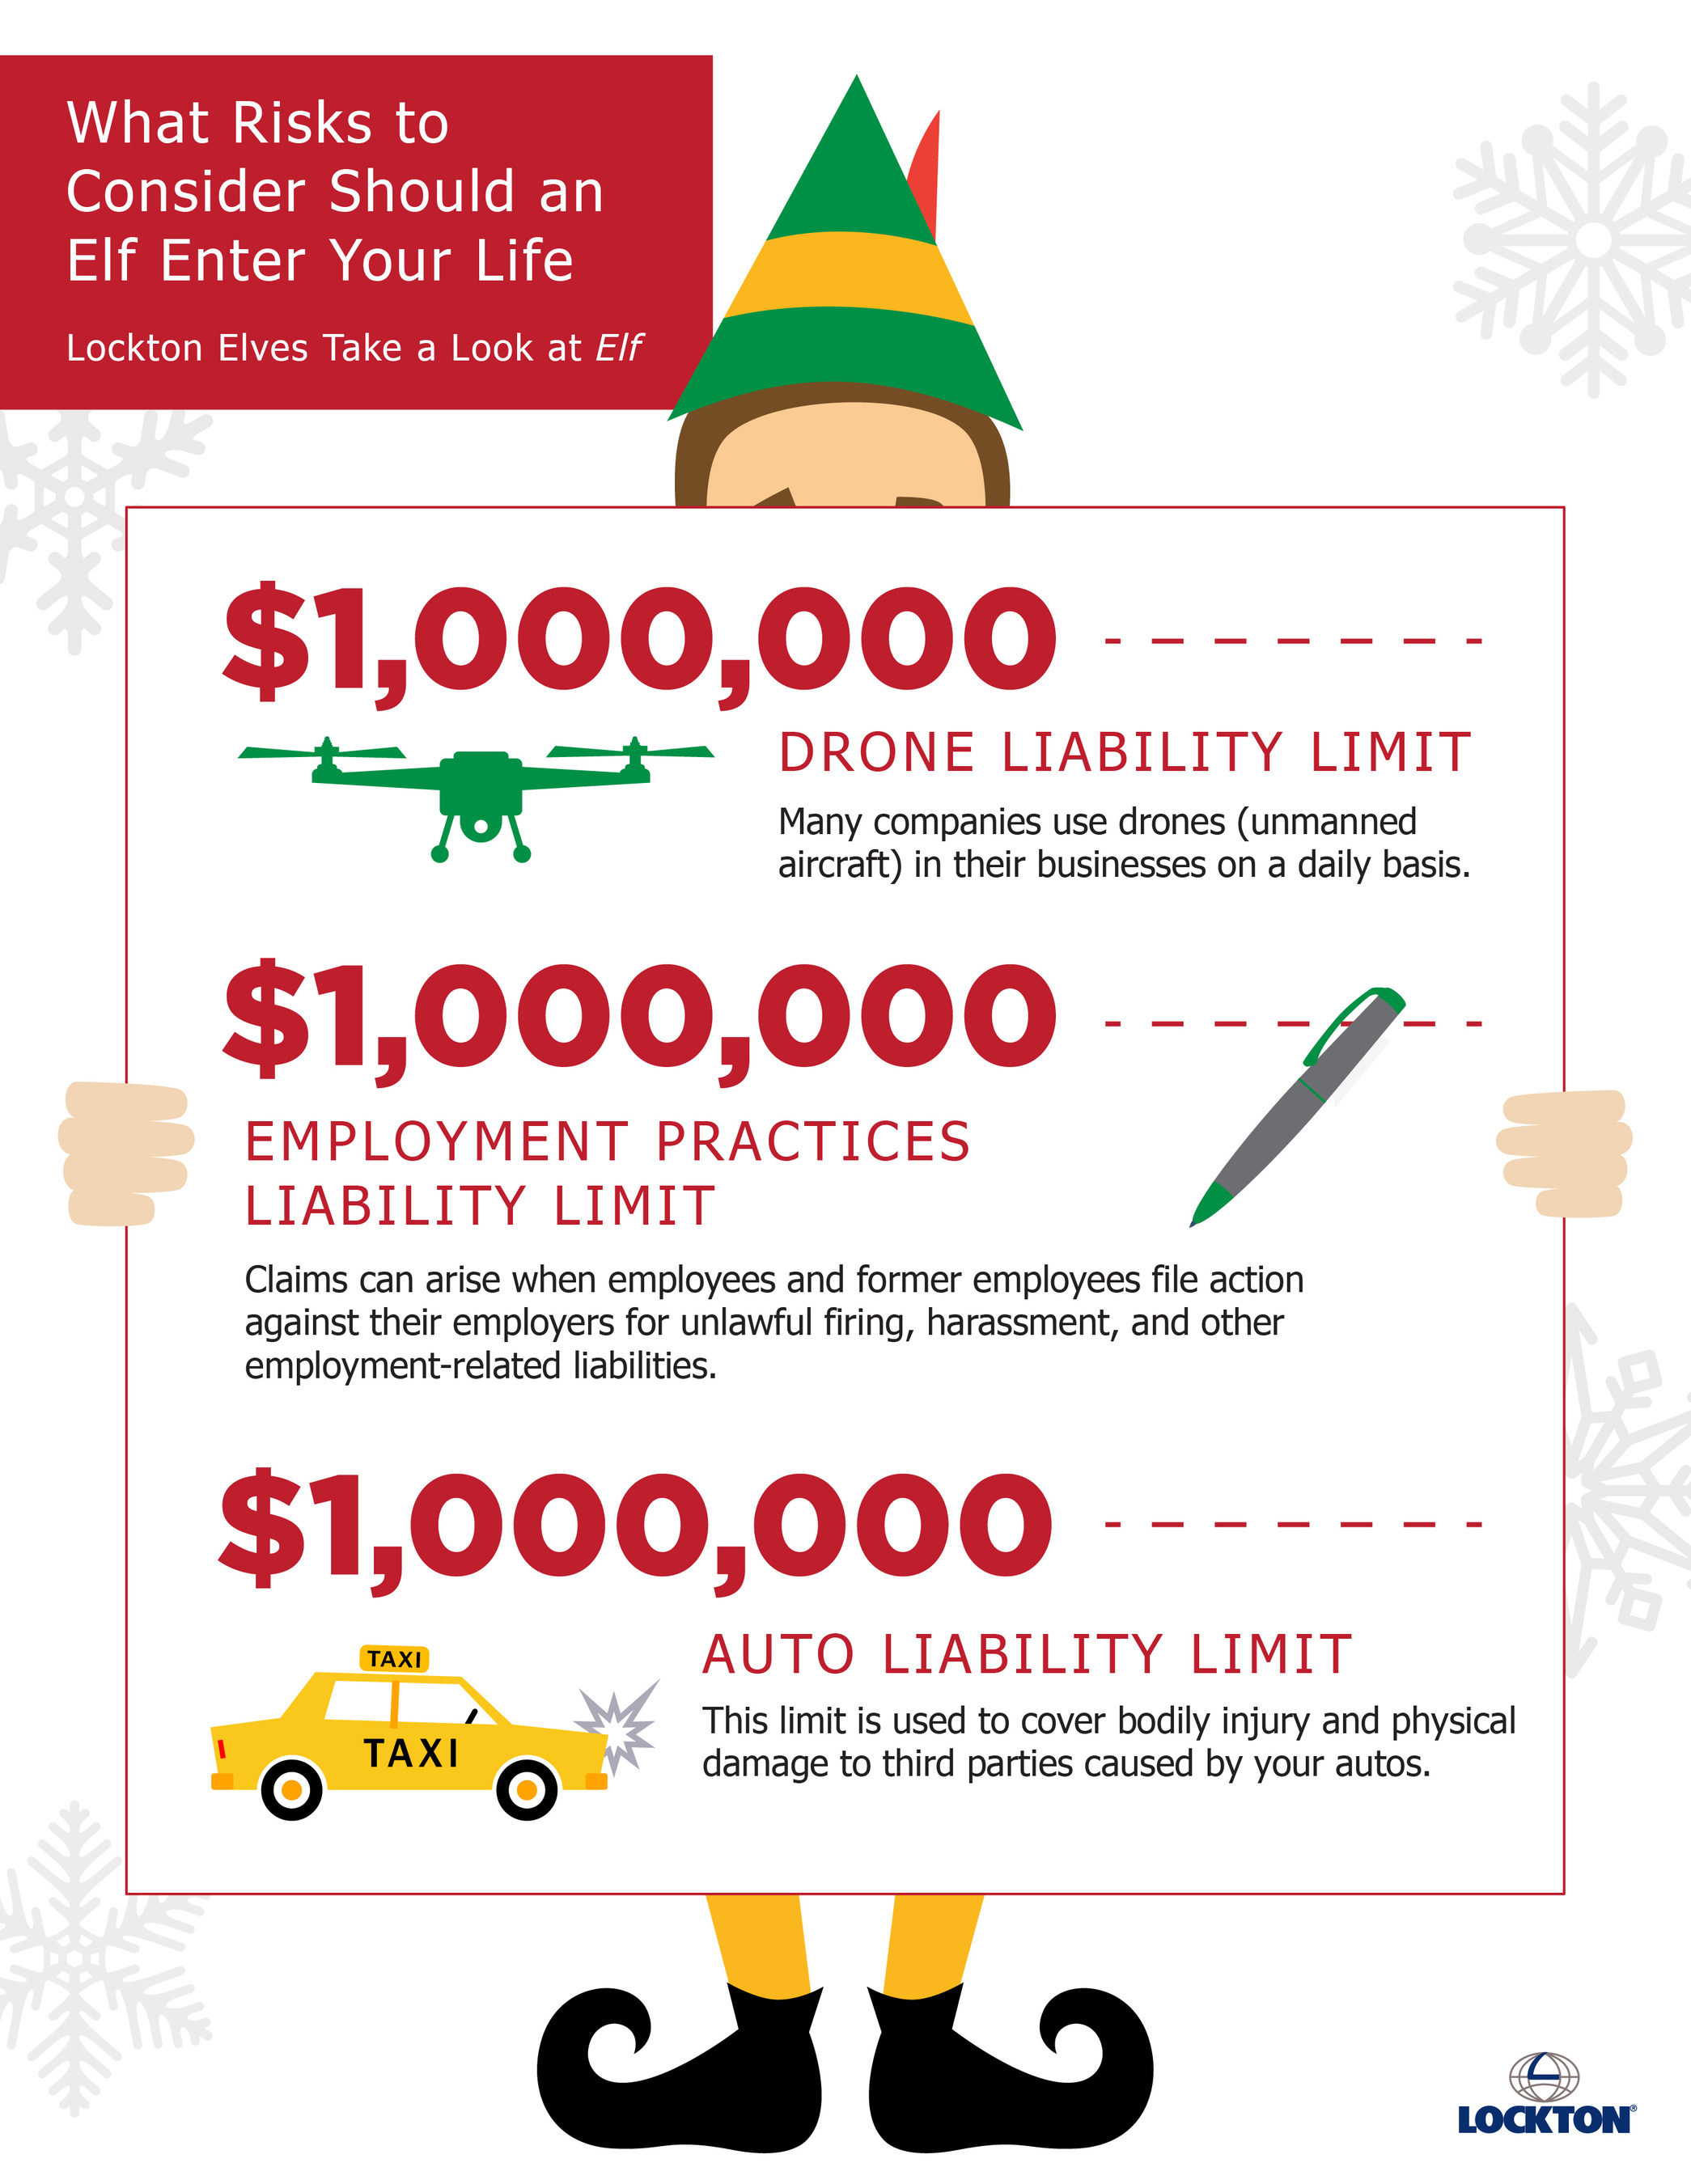 Lockton Elves Take a Look at Elf What Risks to Consider Should an Elf Enter Your Life